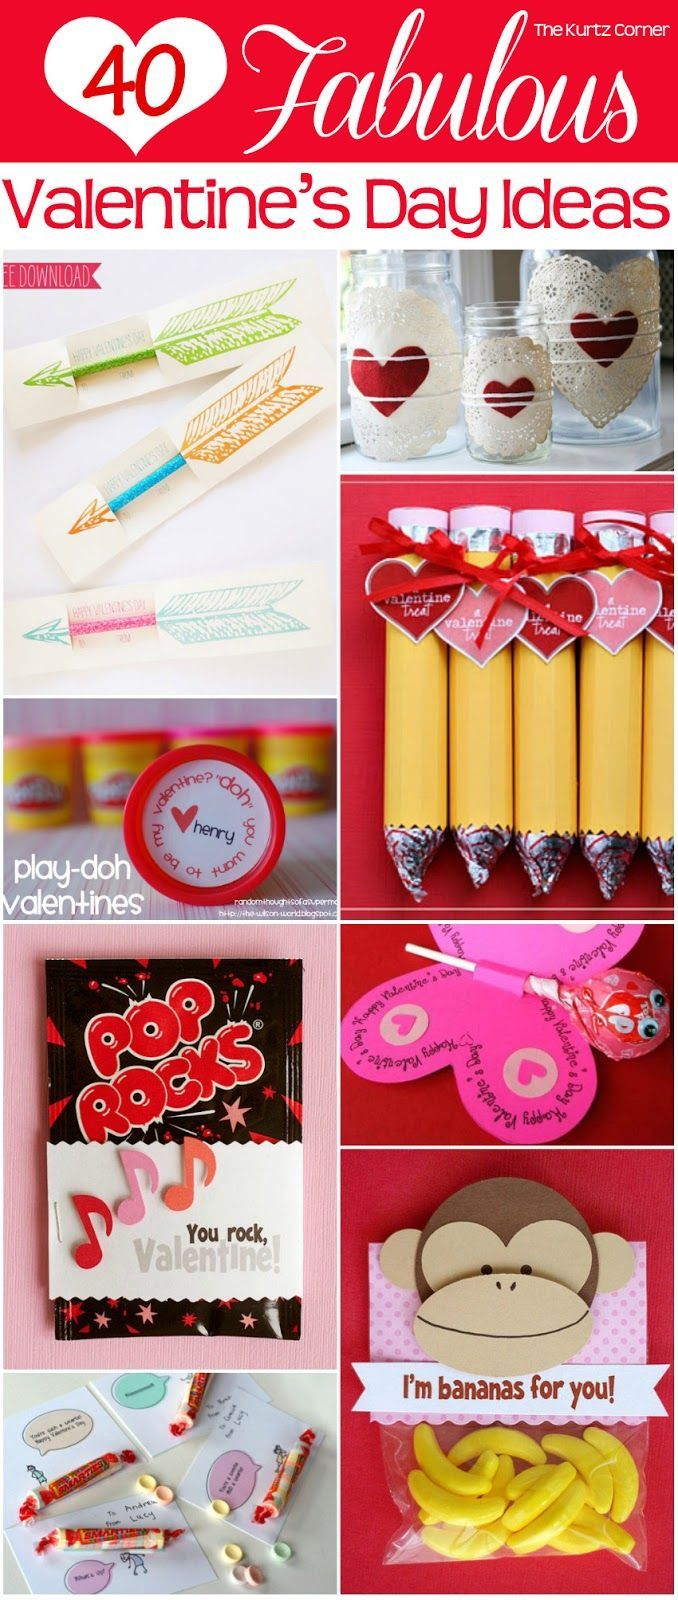 the kurtz corner 40 fabulous valentines day ideas some cute ideas if - Cheap Valentine Ideas